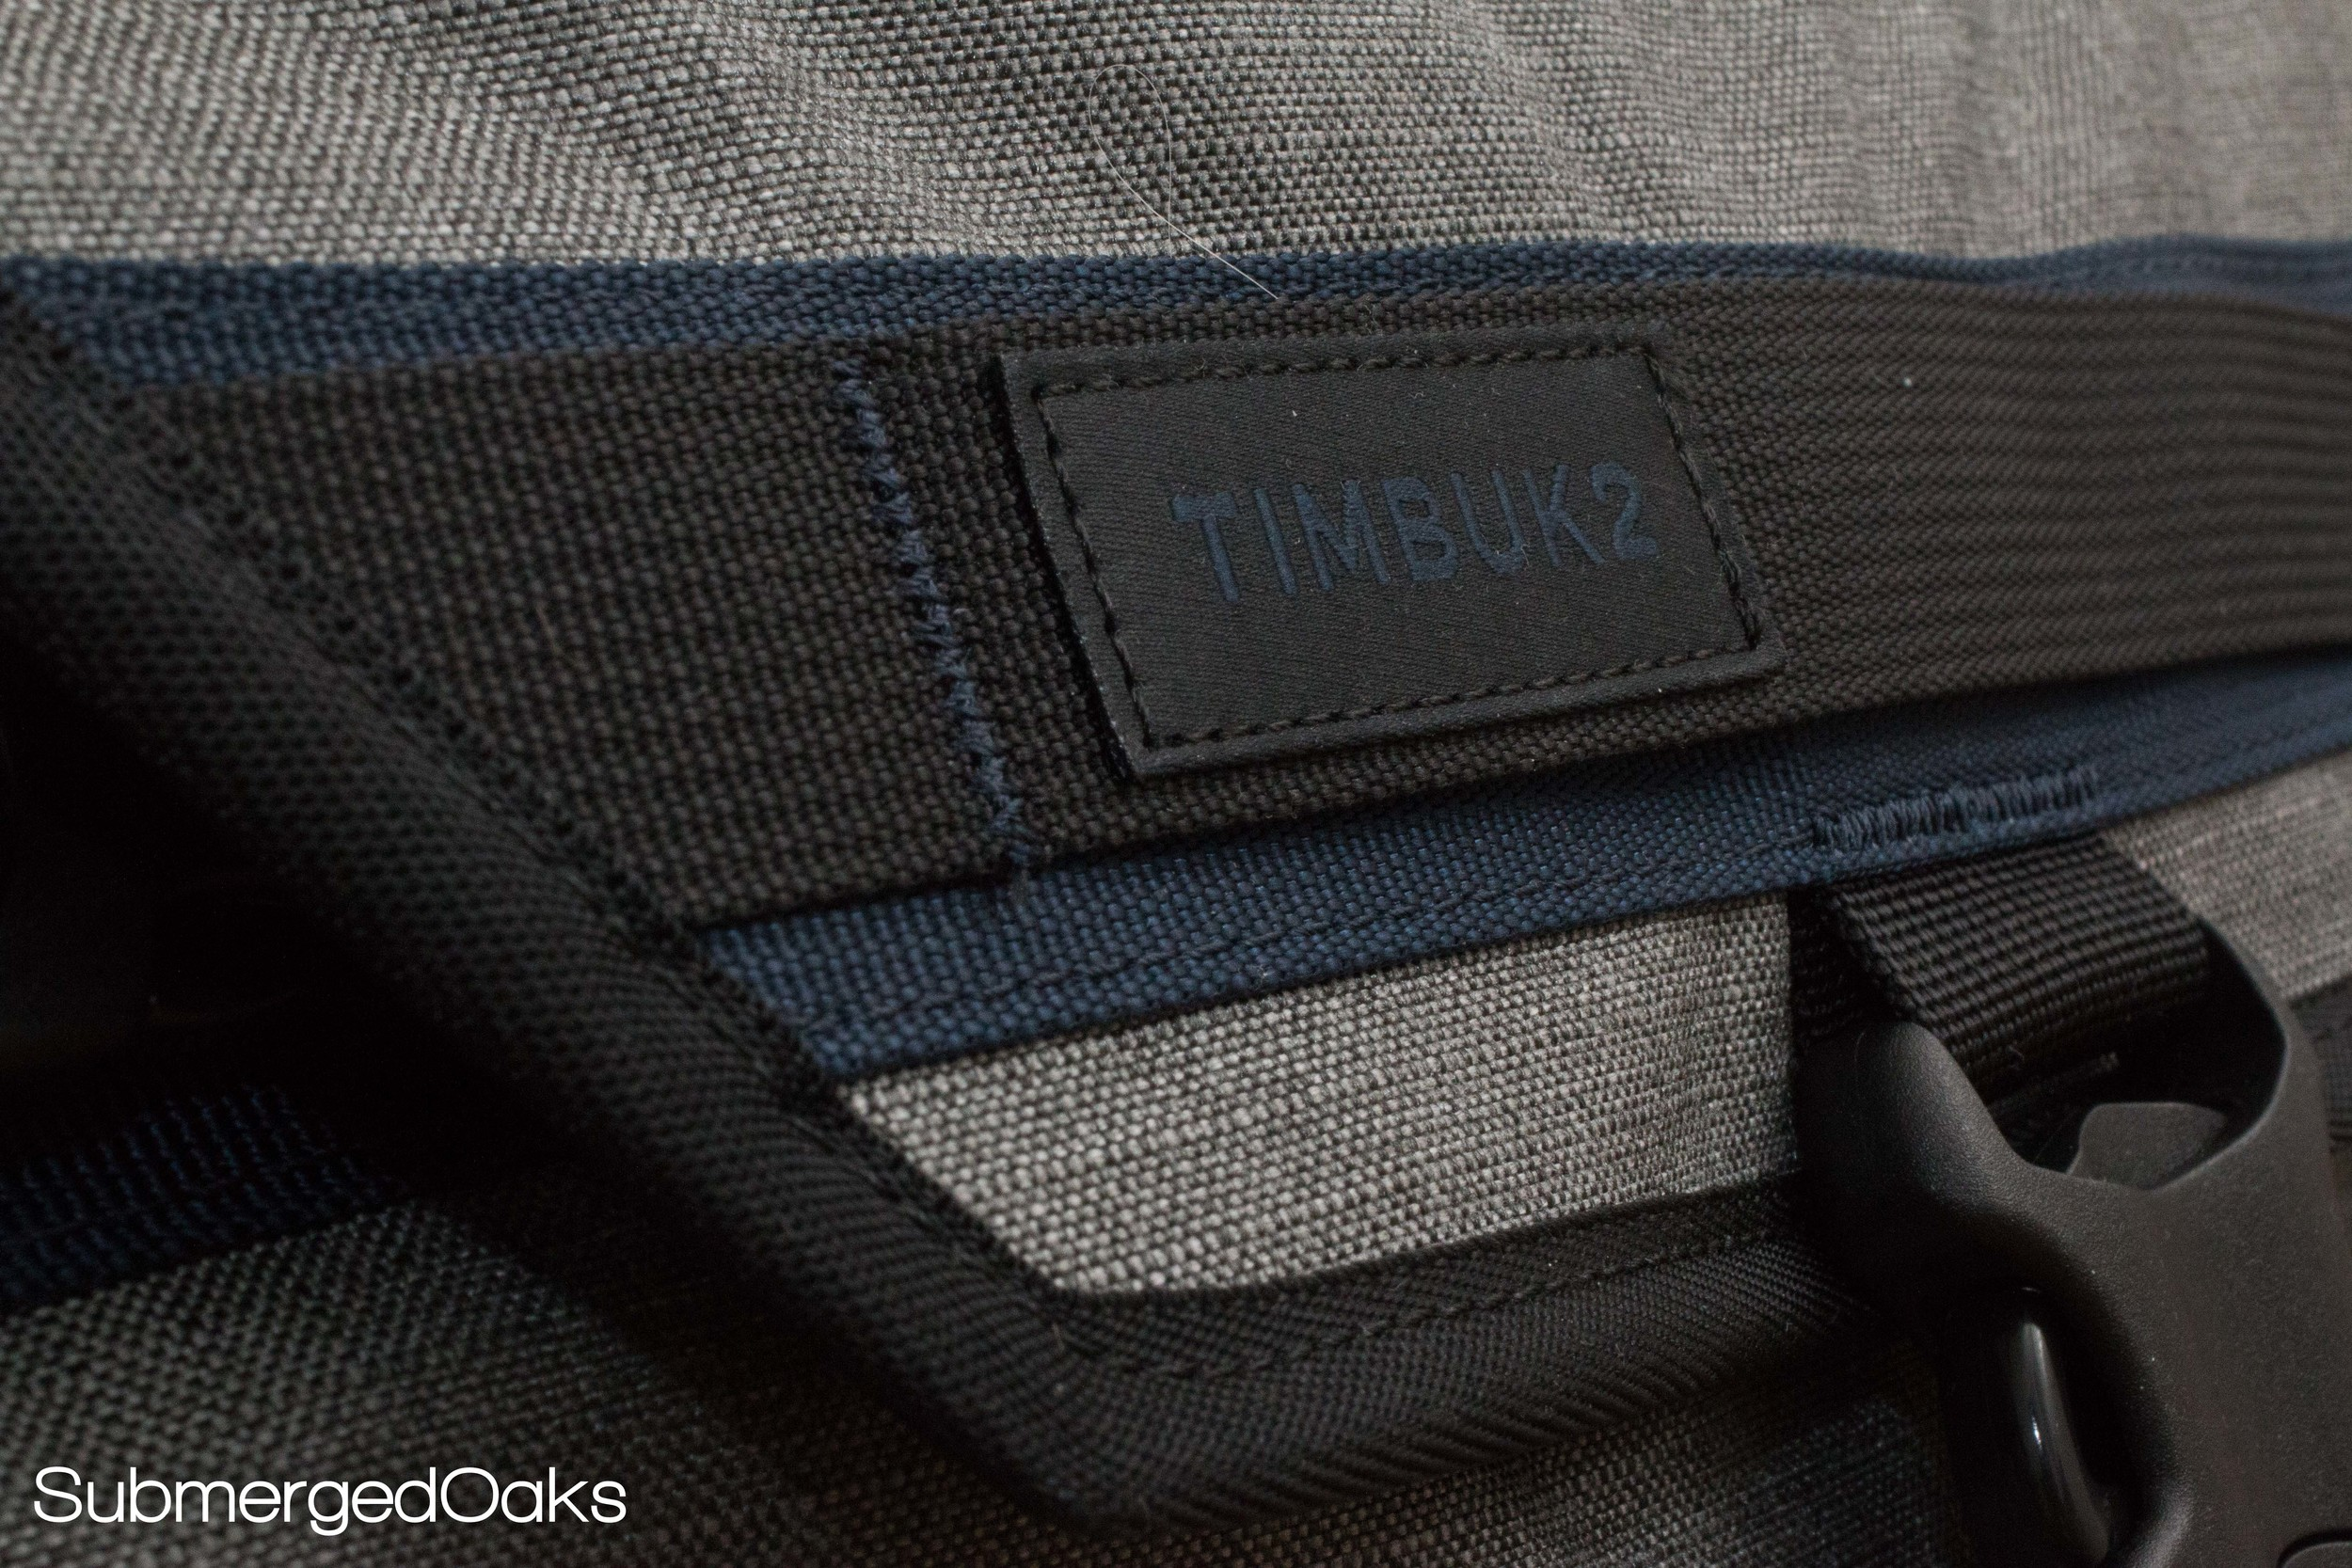 Tumbuk2 paid attention to the details of the bag